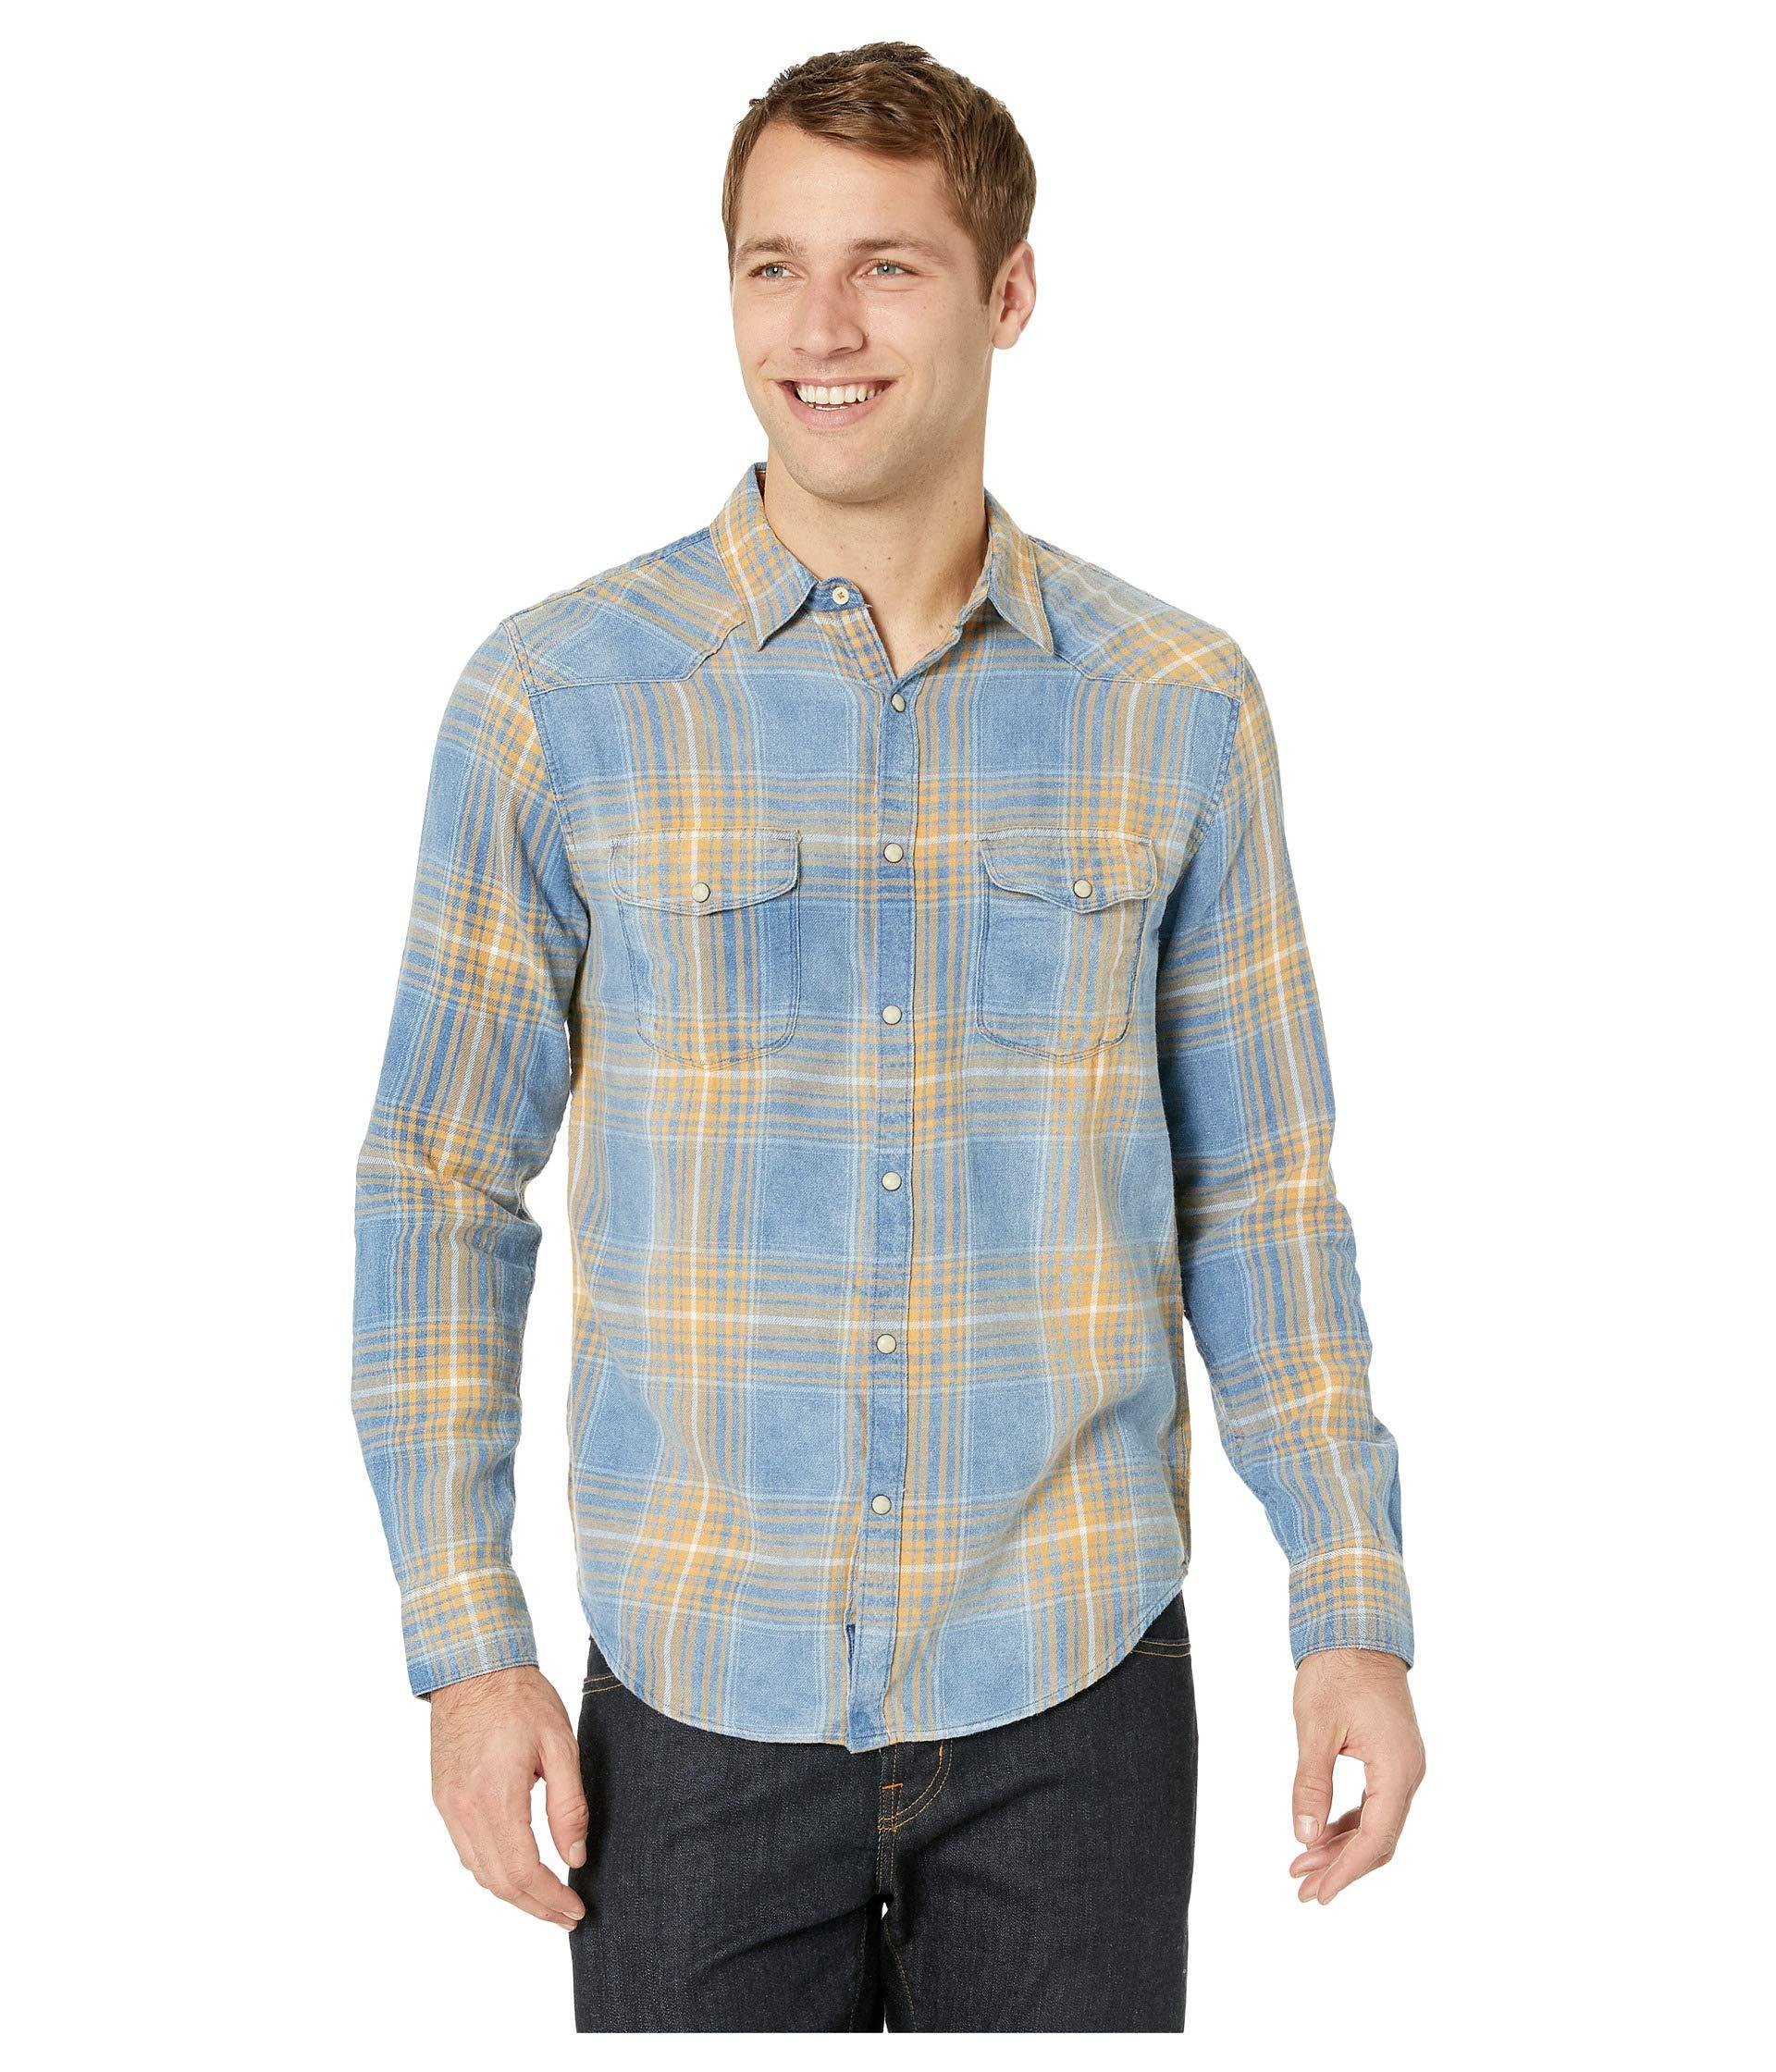 7df014fe80 Lyst - Lucky Brand Santa Fe Western Shirt in Blue for Men - Save 22%